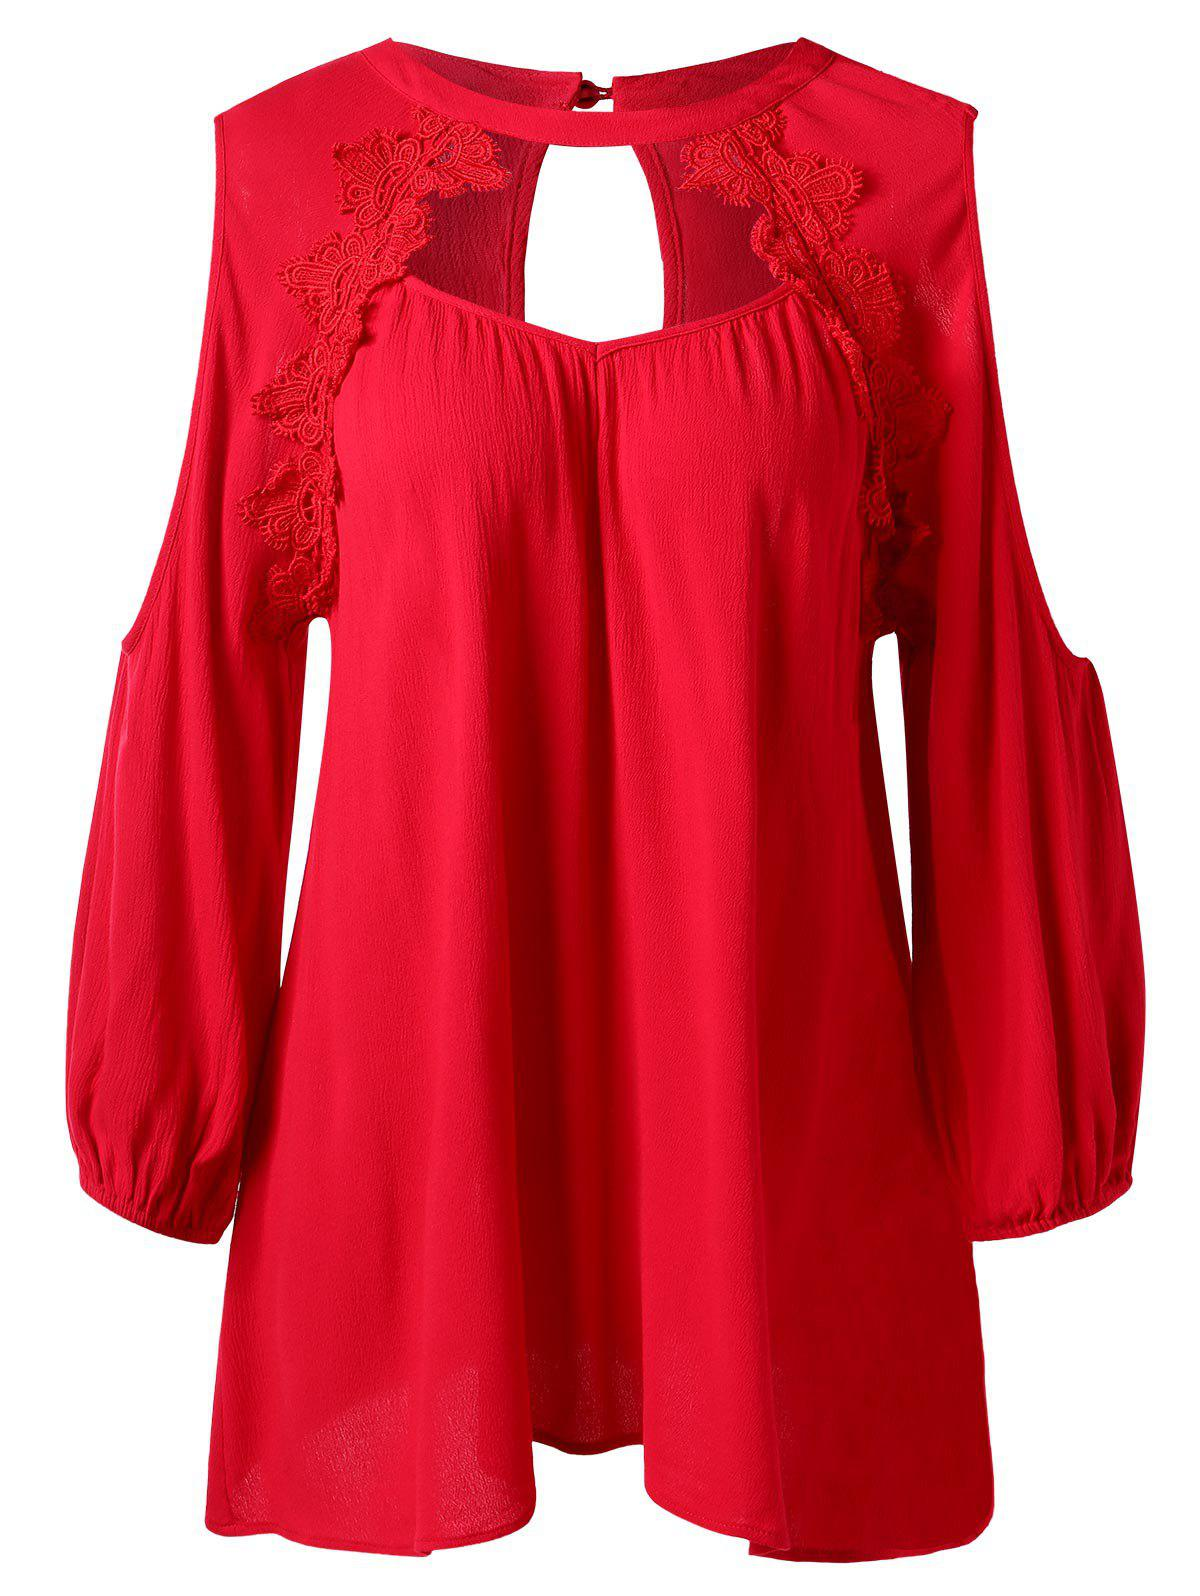 Cut Out Eyelash Lace Cold Shoulder Blouse - RED M